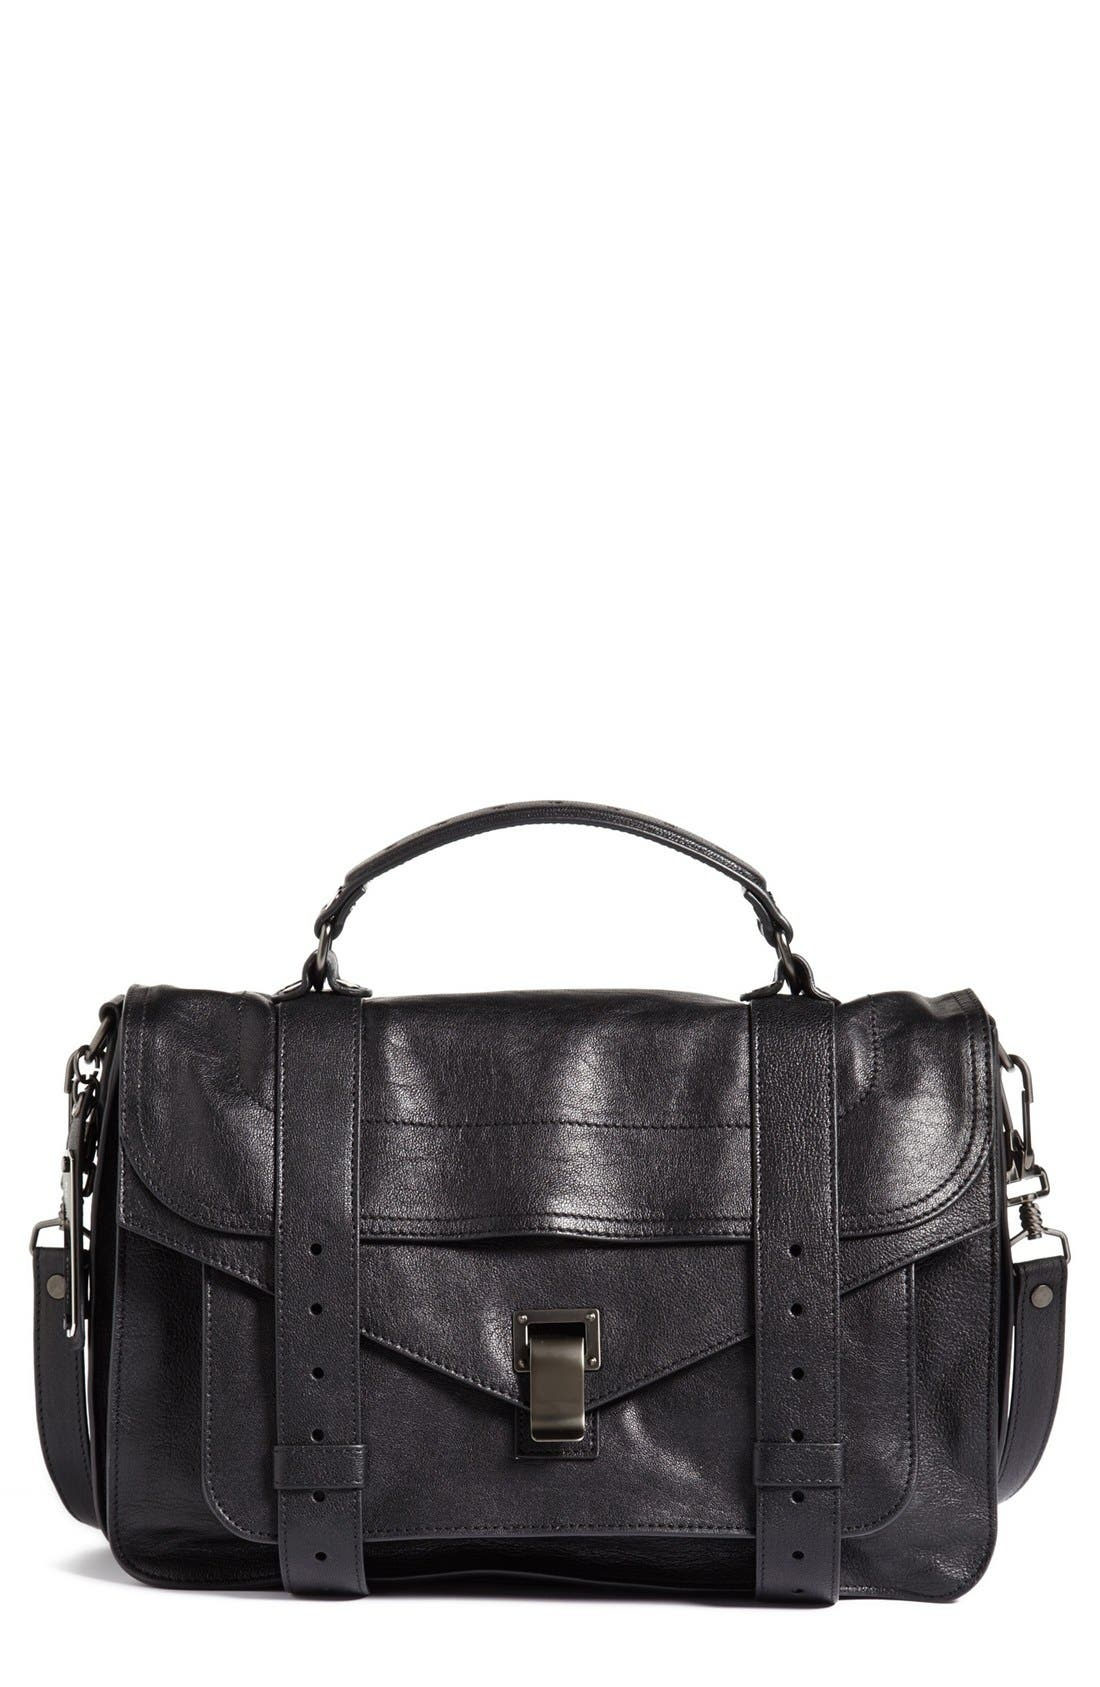 Main Image - Proenza Schouler 'Medium PS1' Satchel